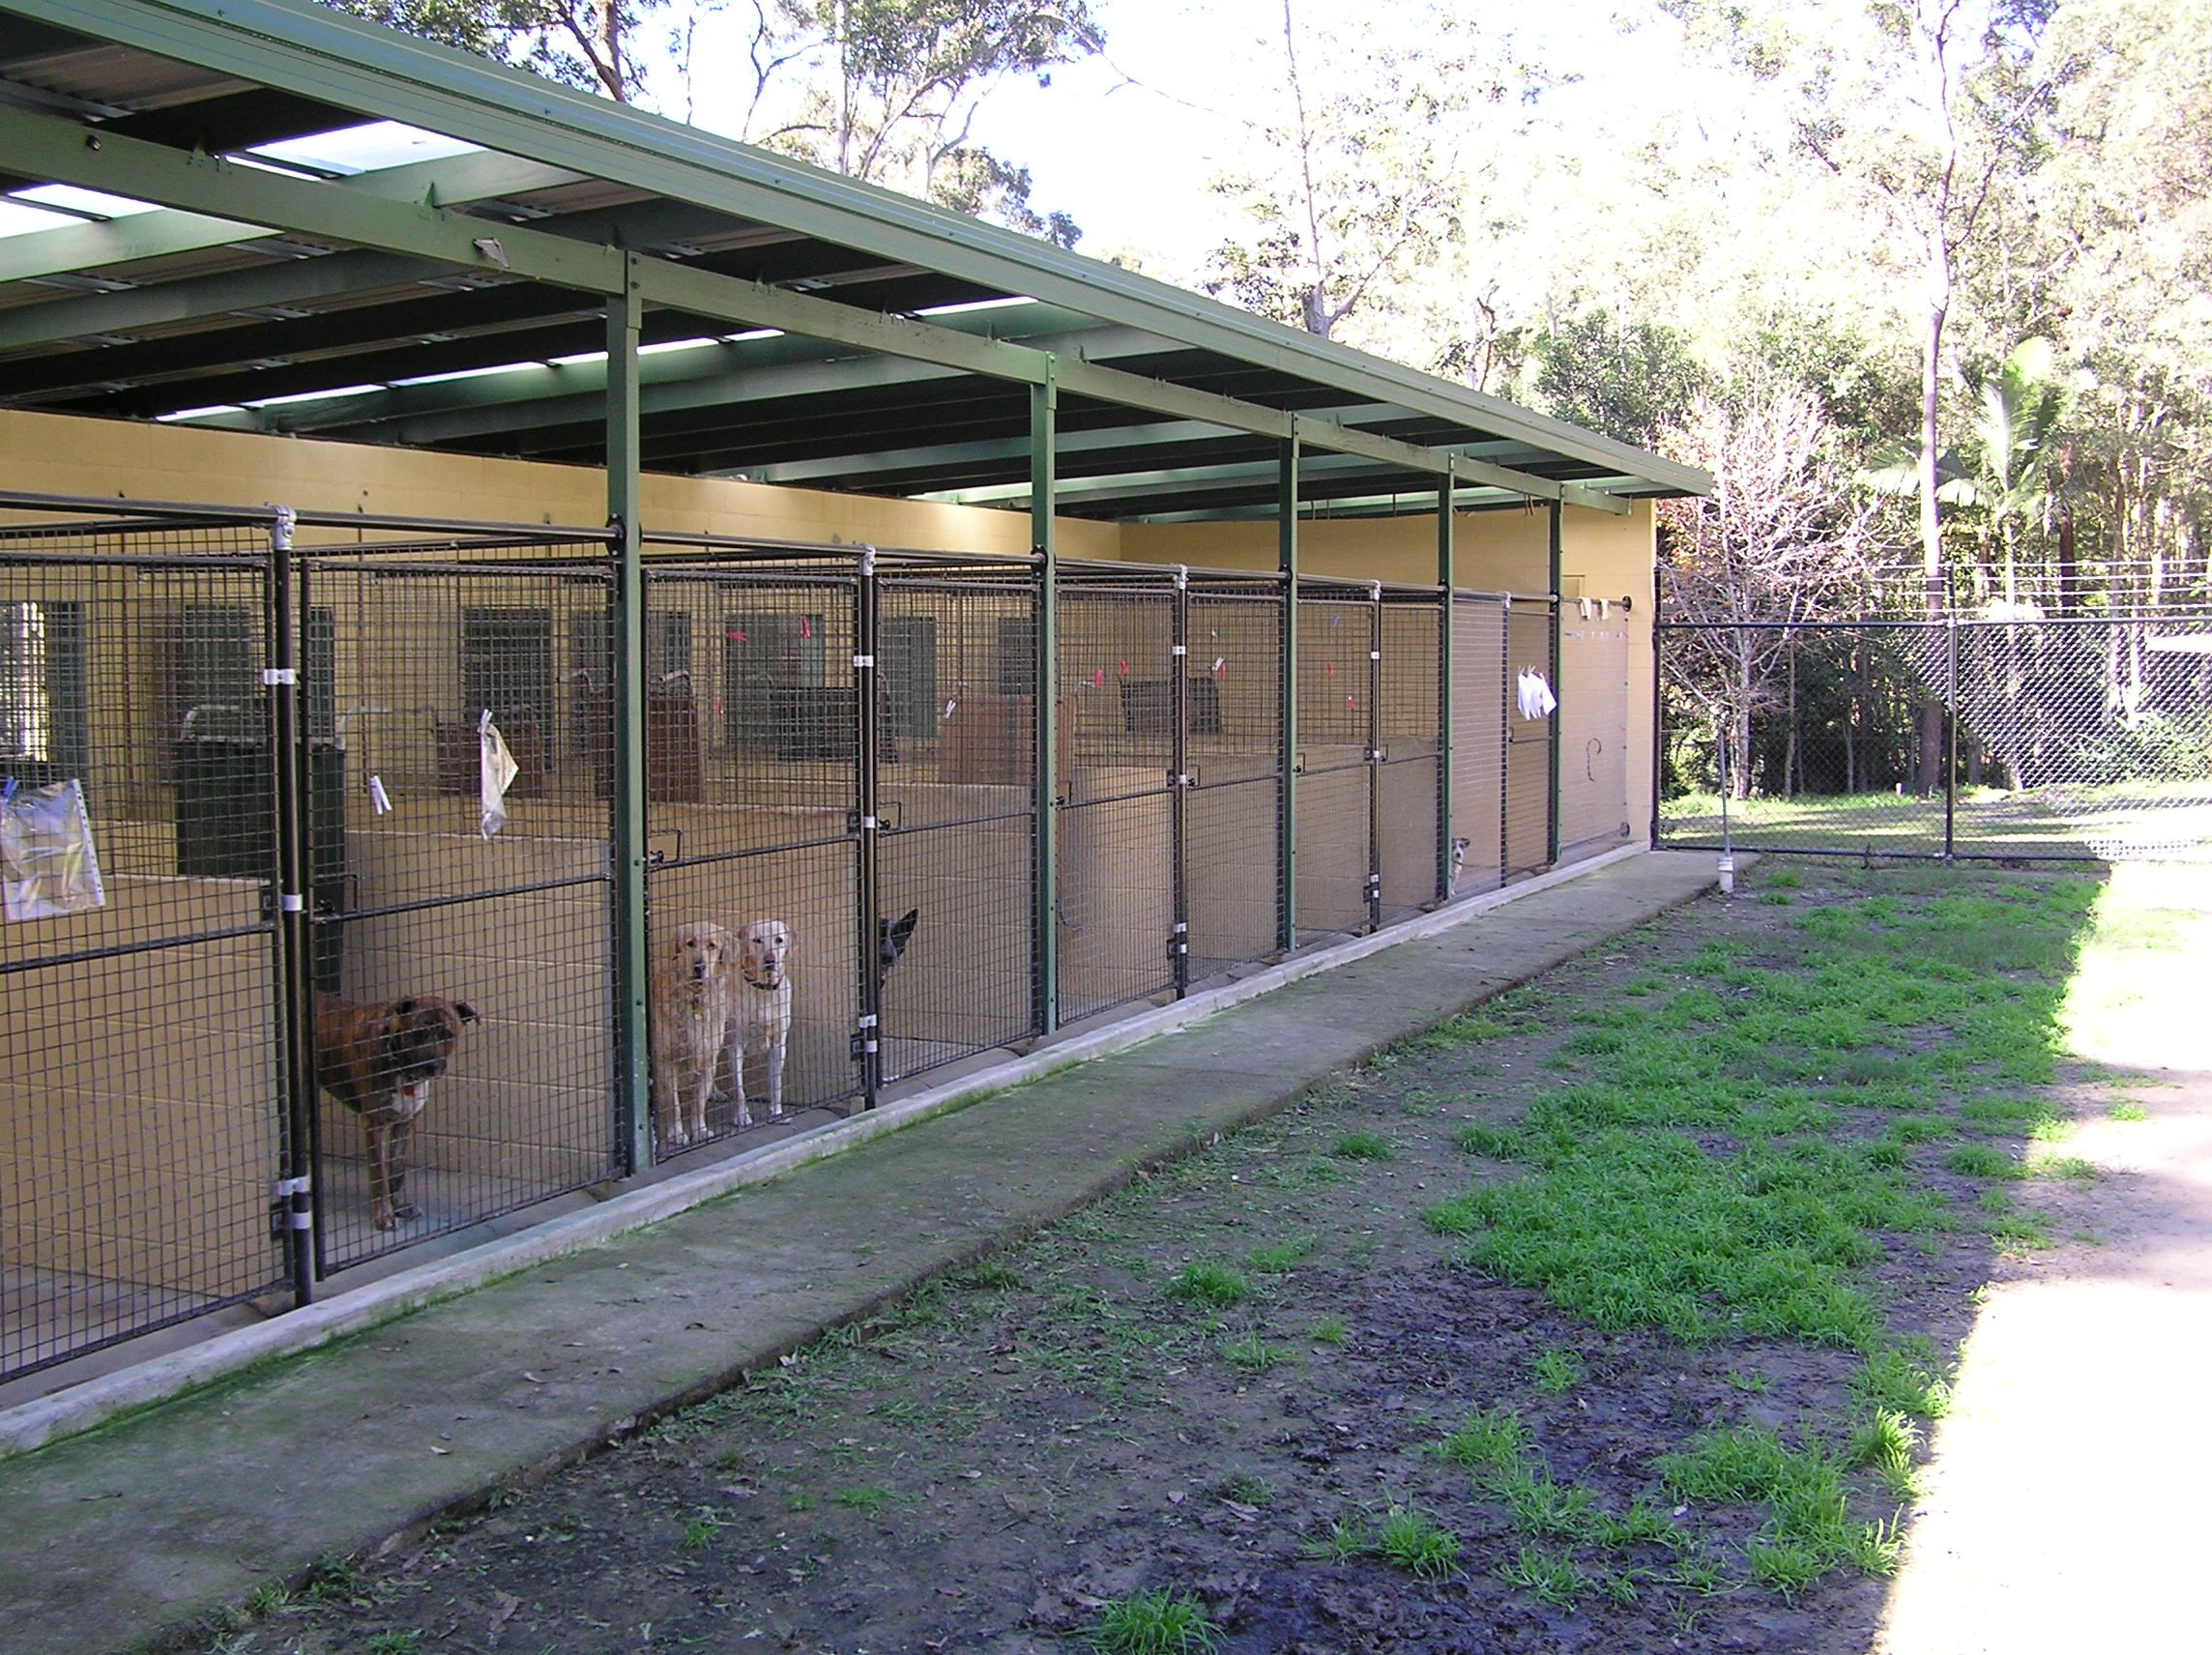 dog boarding kennel designs bing images - Dog Kennel Design Ideas